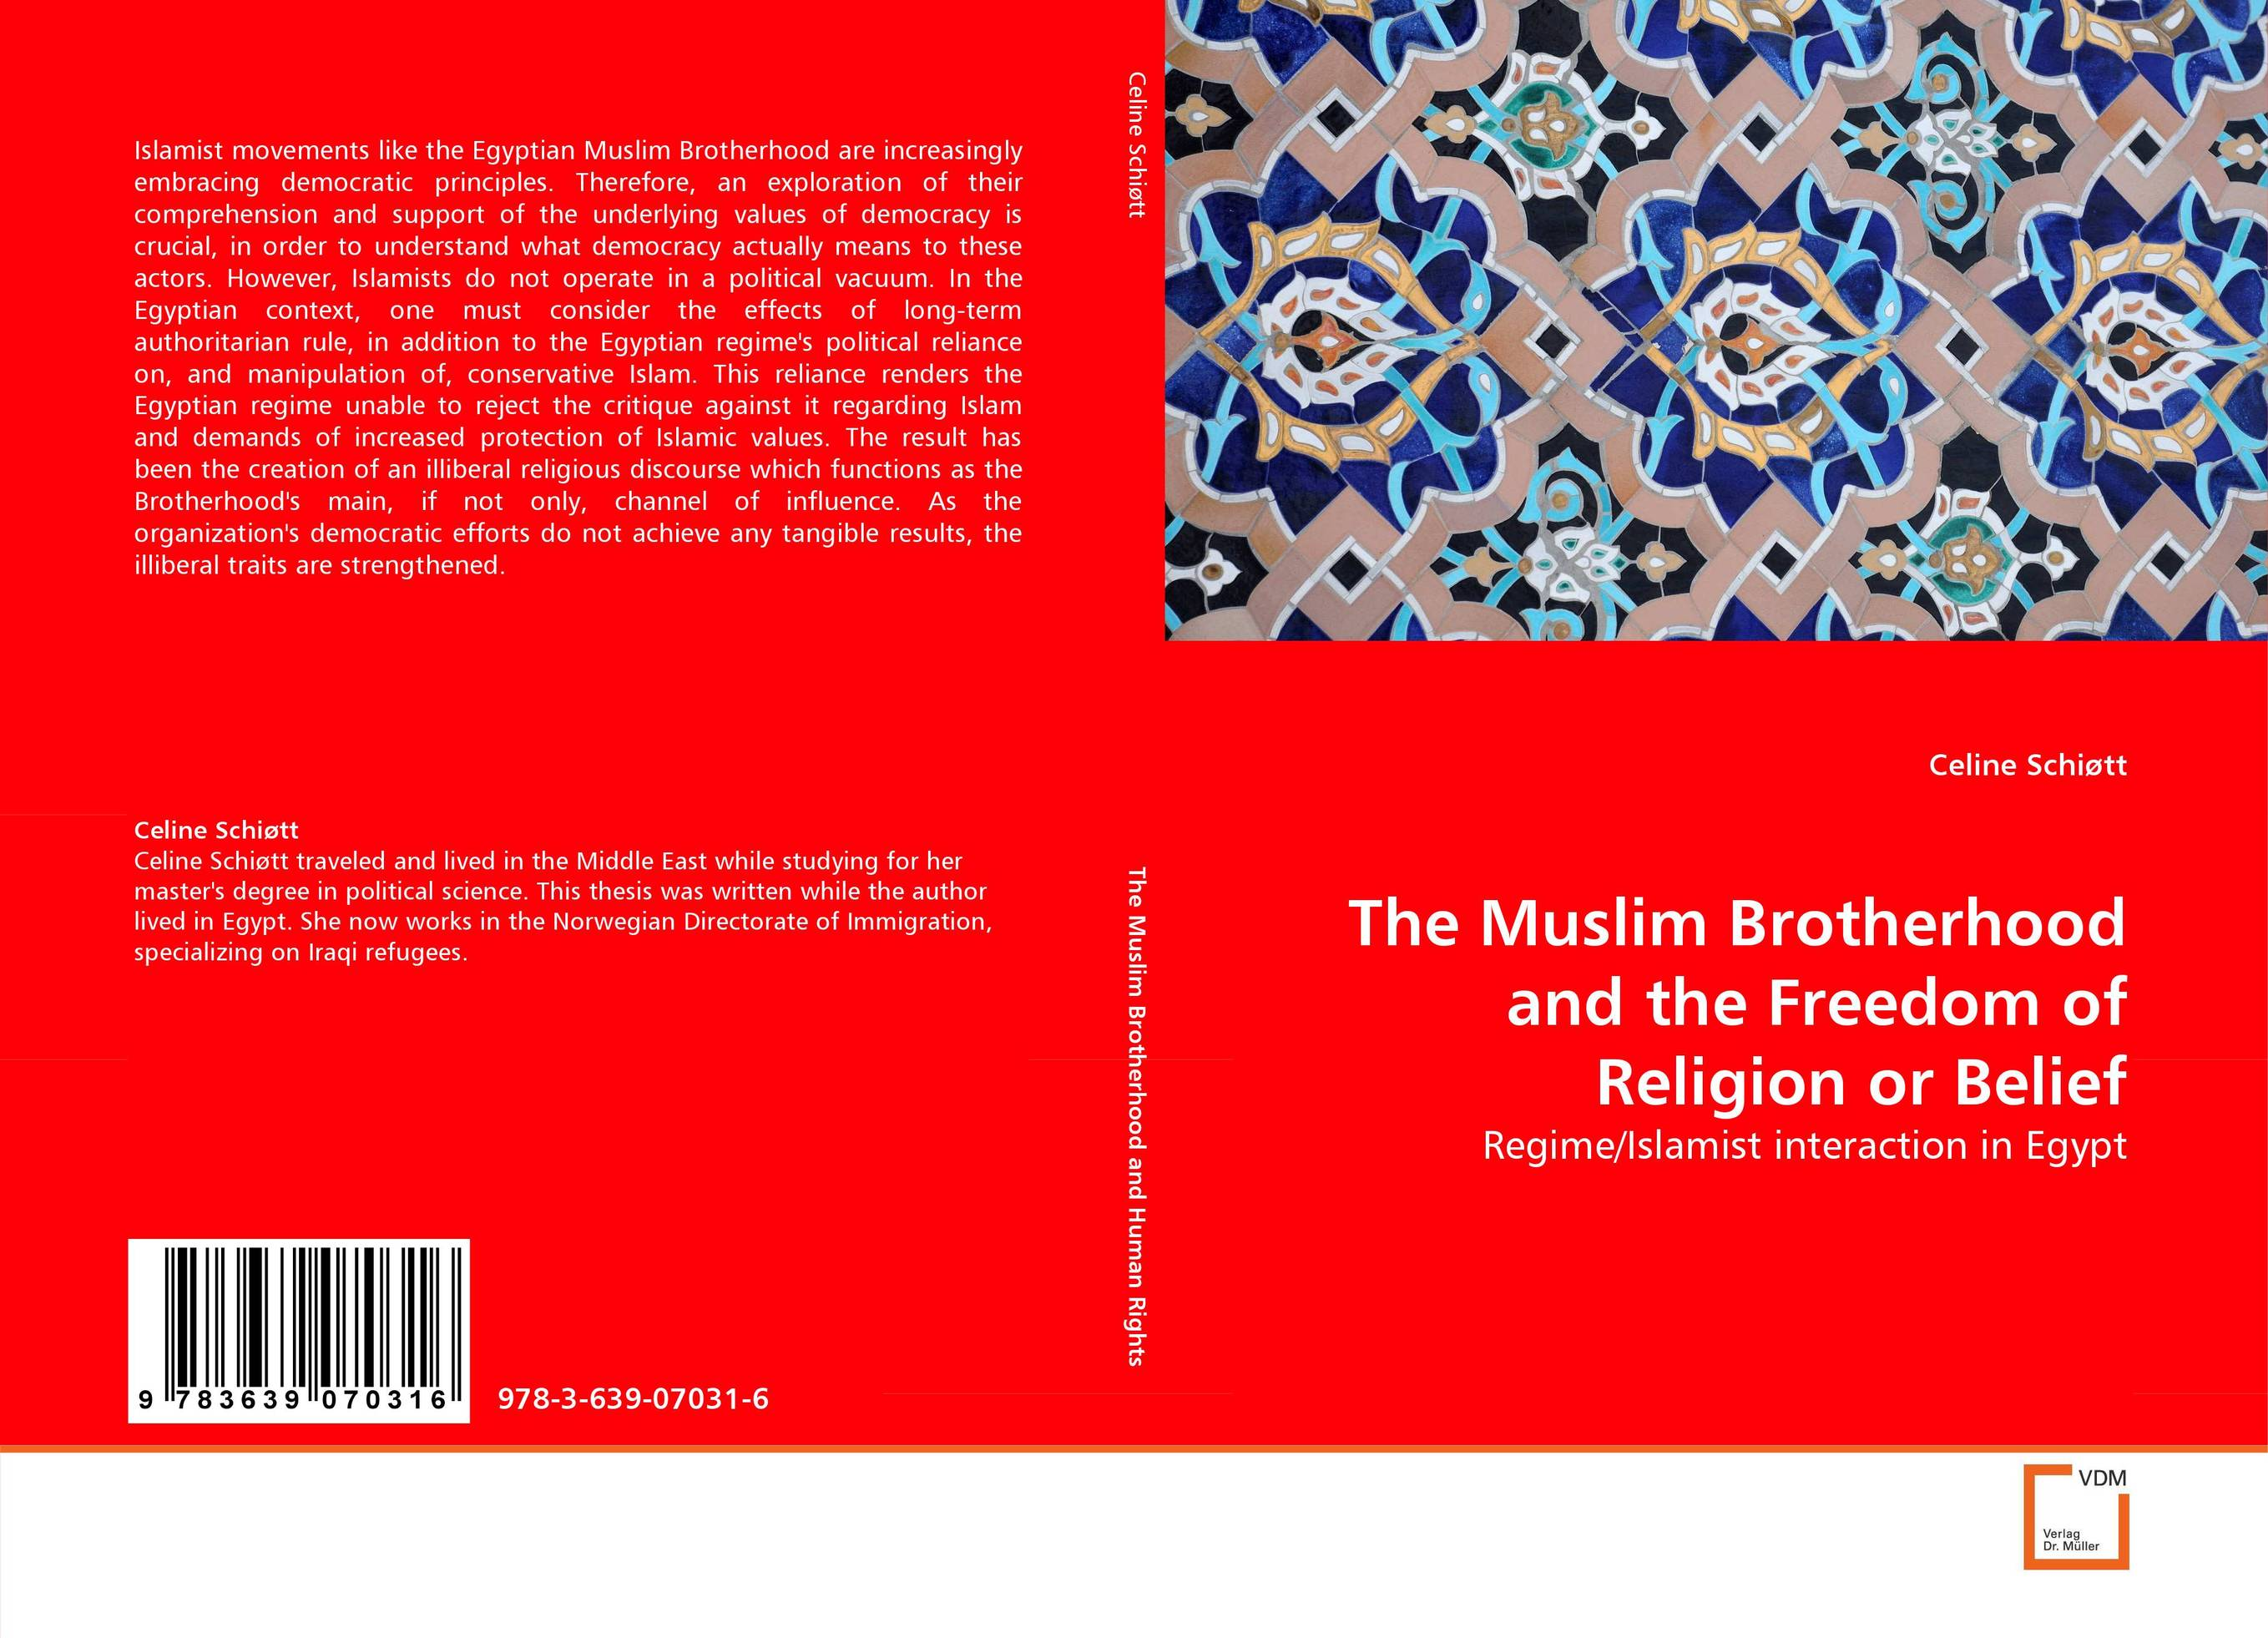 The Muslim Brotherhood and the Freedom of Religion or Belief egyptian art